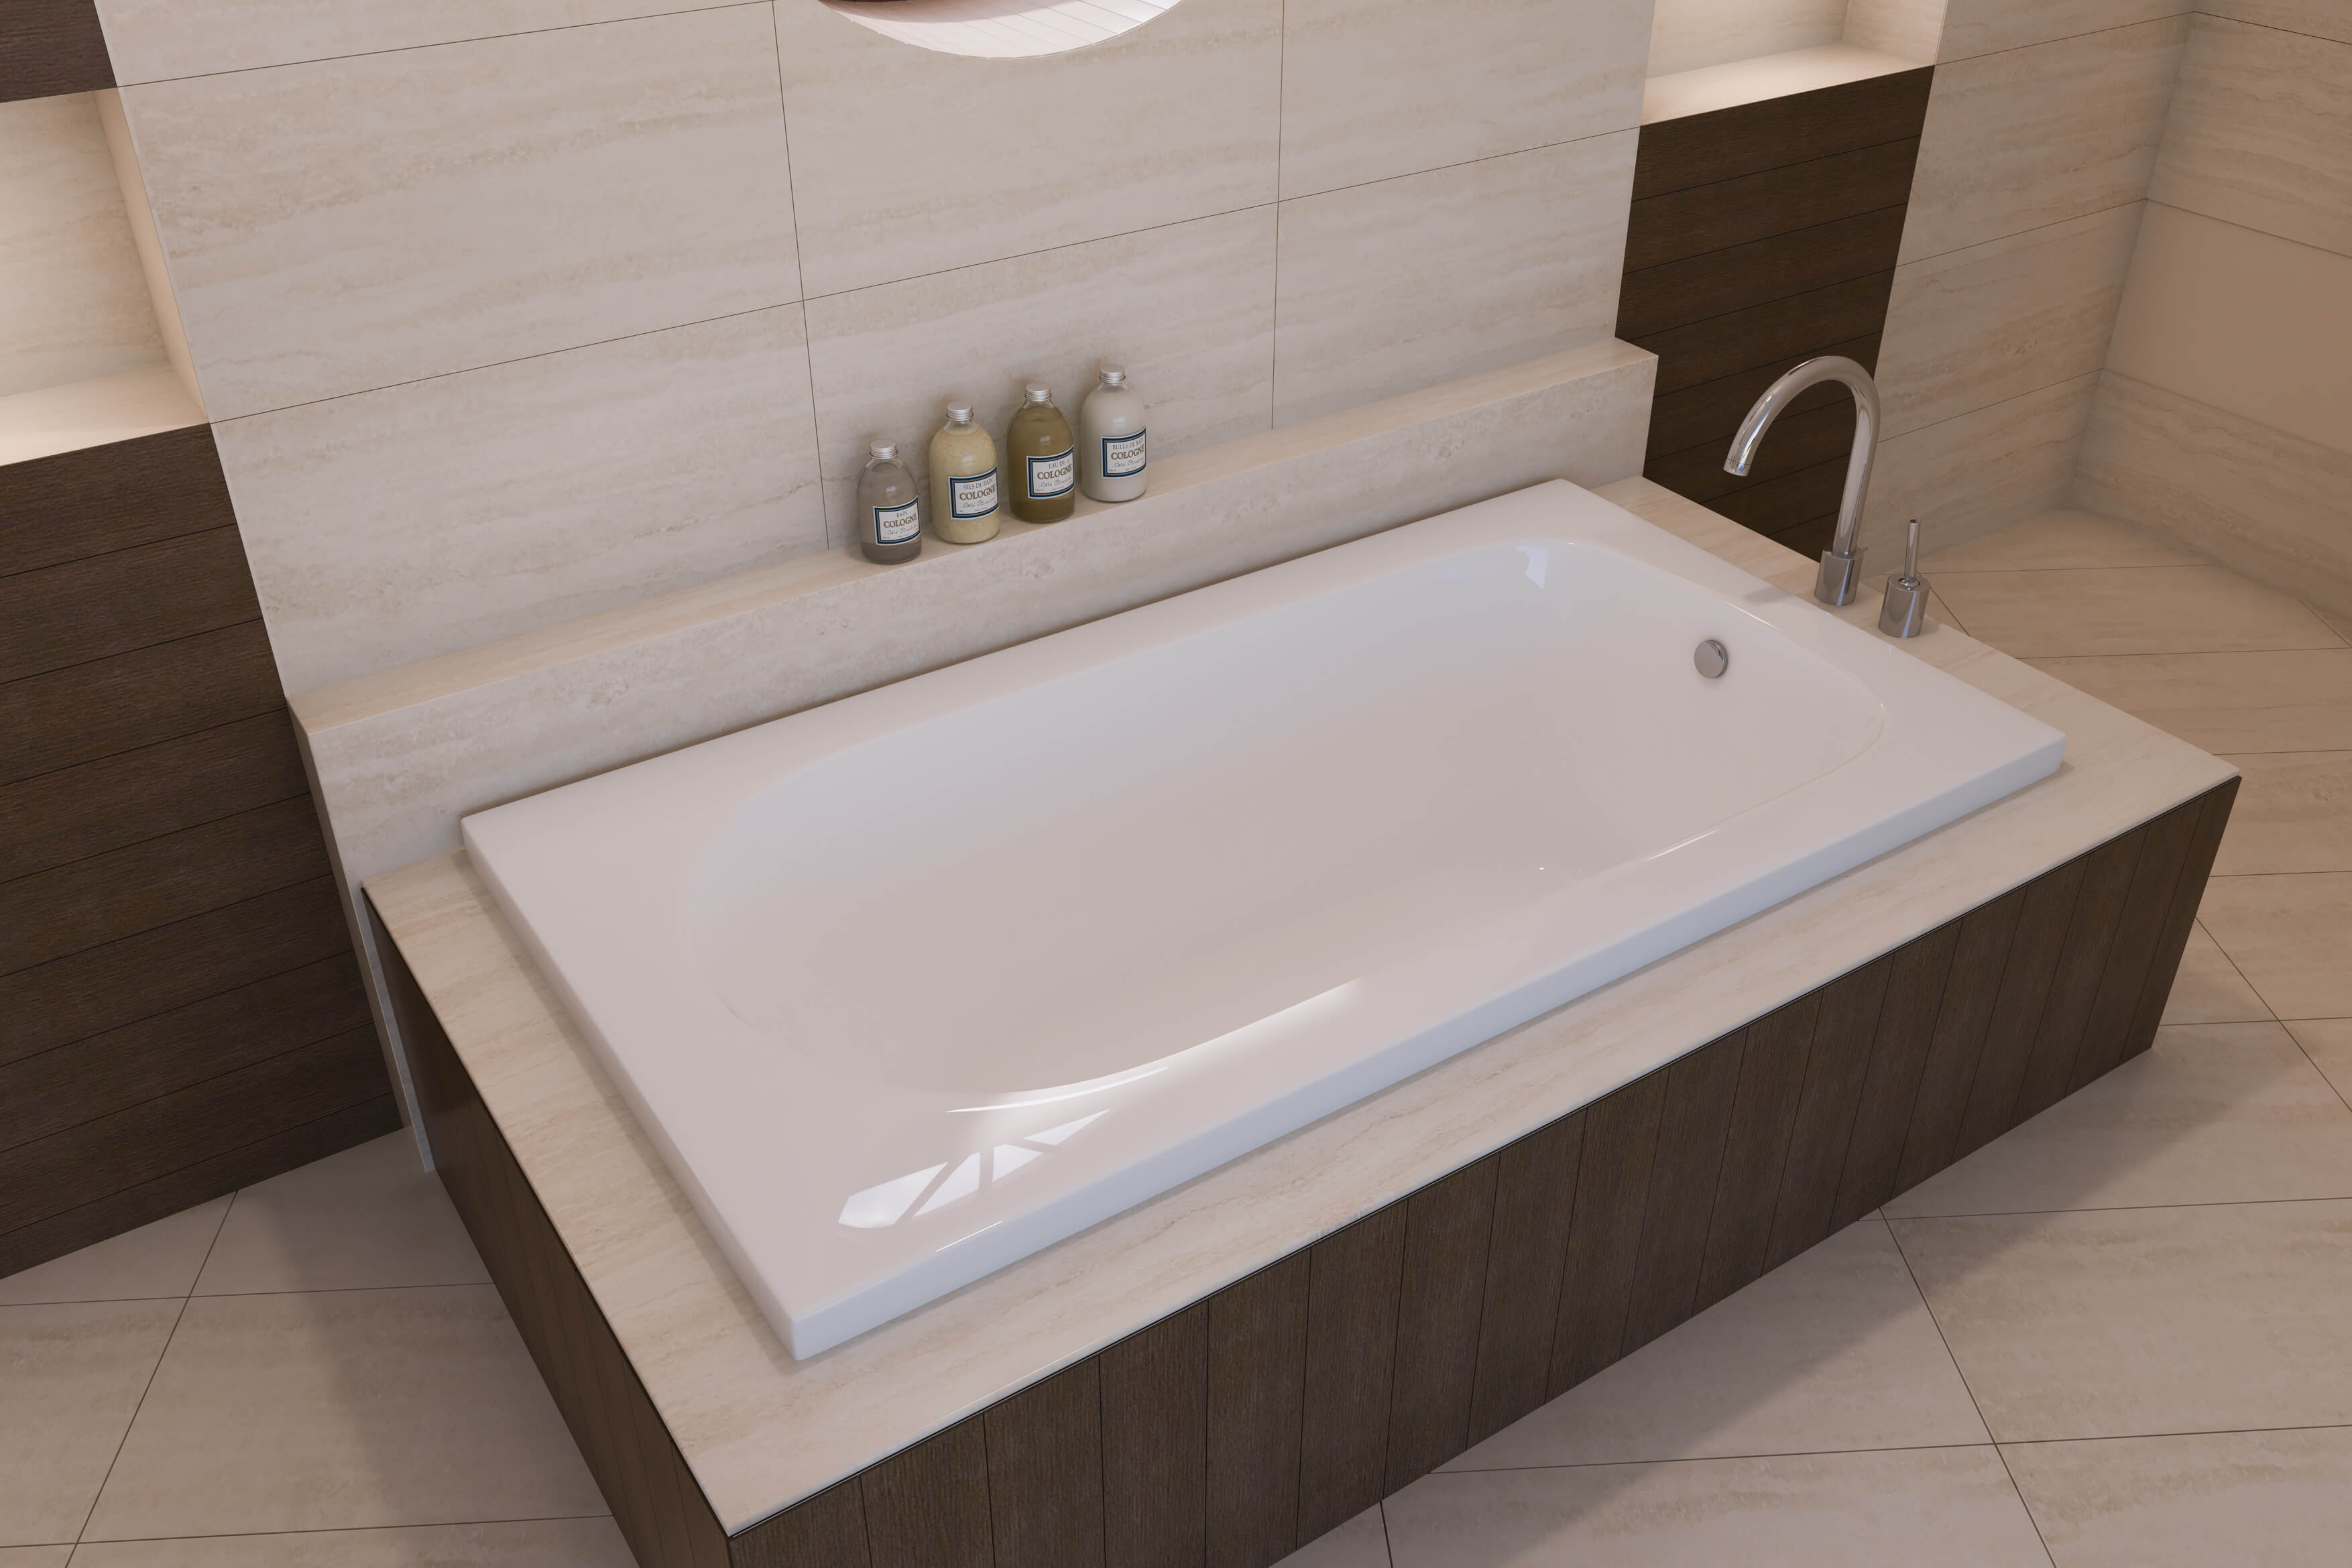 small sink that menards drop and lowe undermount white you glass bathroom restroom spaces ceramic rectangular sinks create full rectangle contemporary with of counter like for vanity kraus toilet vanities helps lowes vessel modern kcv in deep above kraususa bathtub bathtubs faucets square size